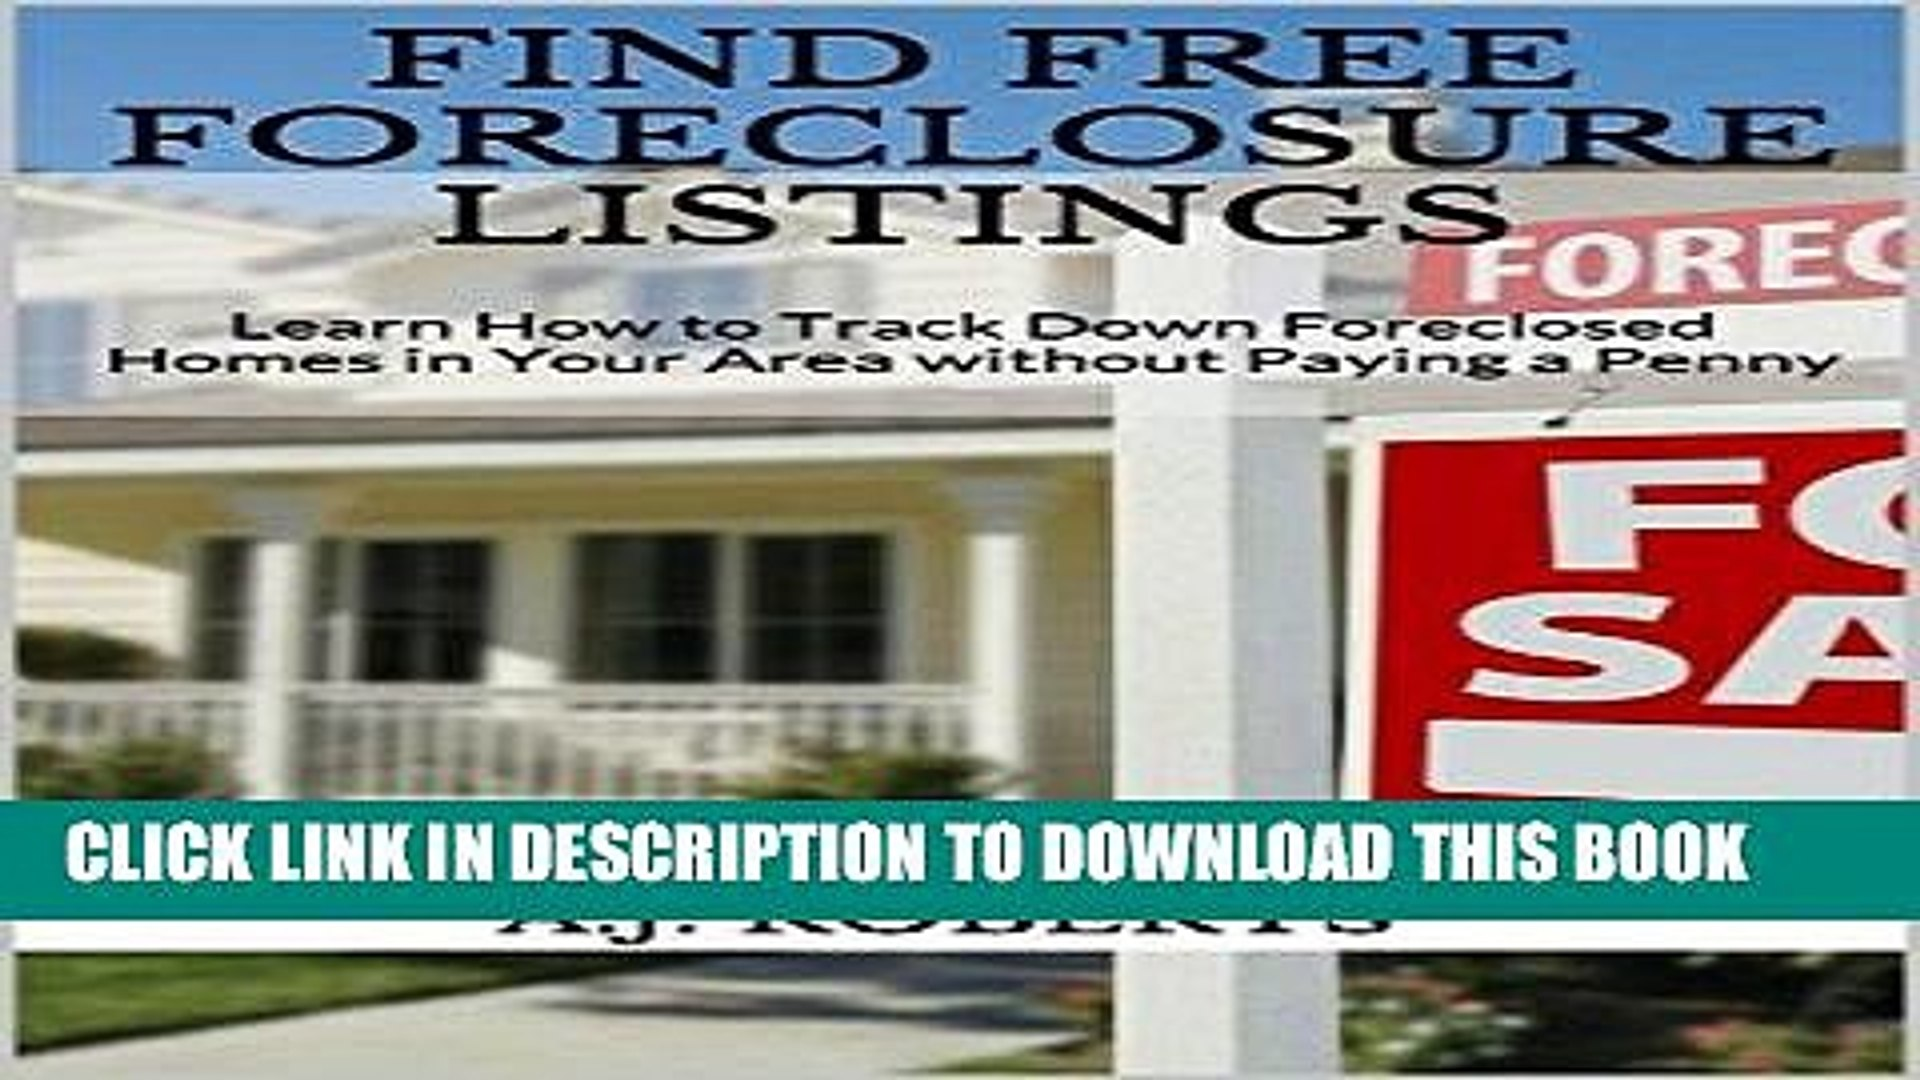 [New] PDF FIND FREE FORECLOSURE LISTINGS: Learn How to Track Down  Foreclosed Homes in Your Area